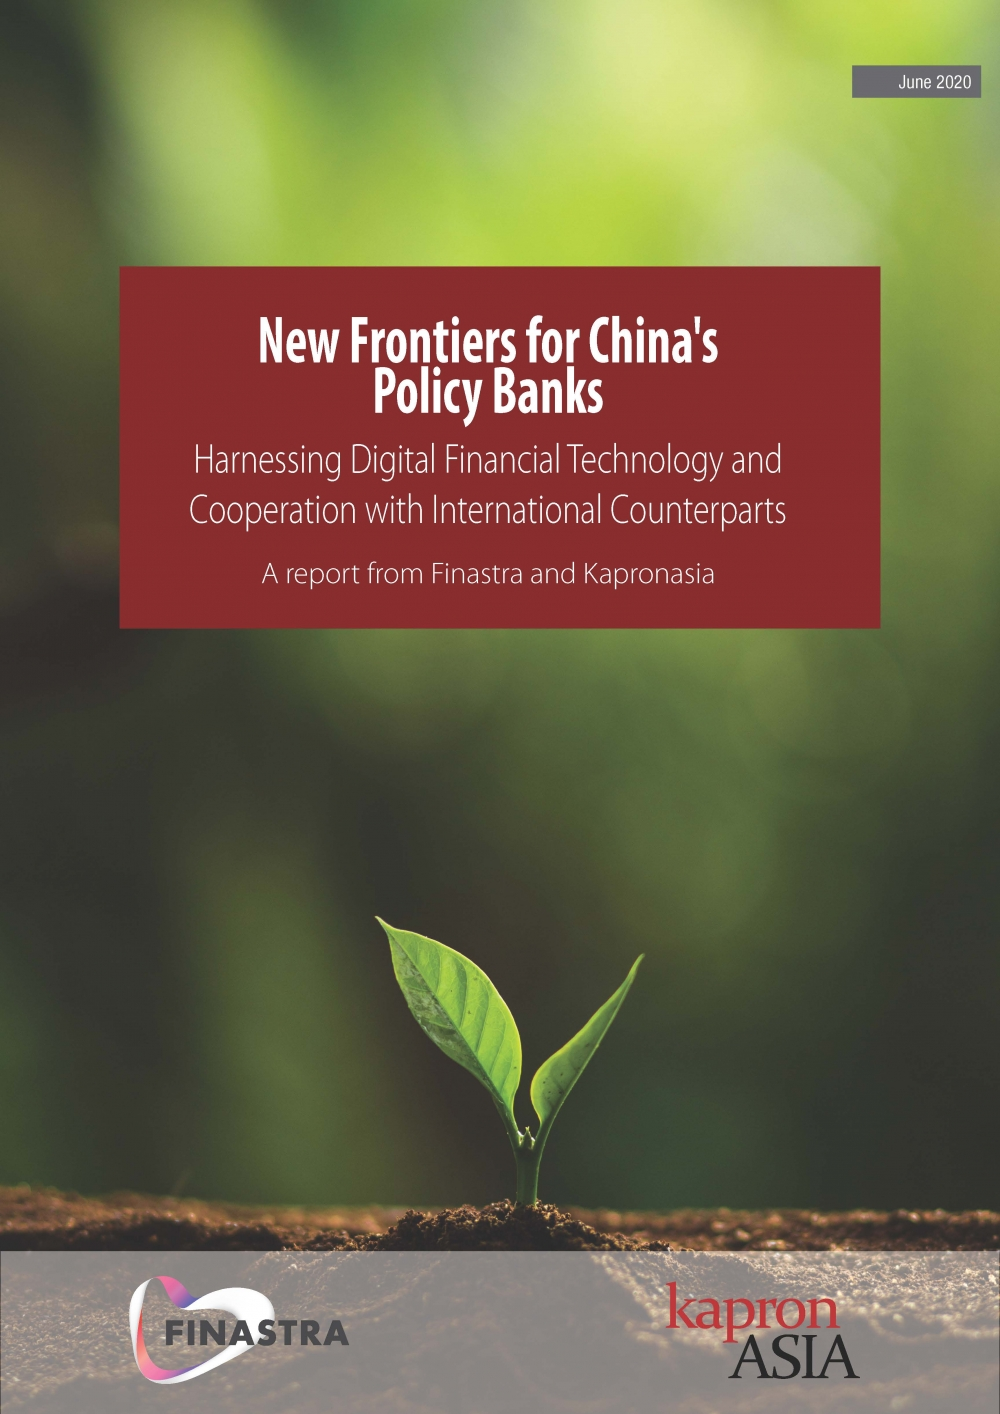 New Frontiers for China's Policy Banks - A report from Finastra and Kapronasia